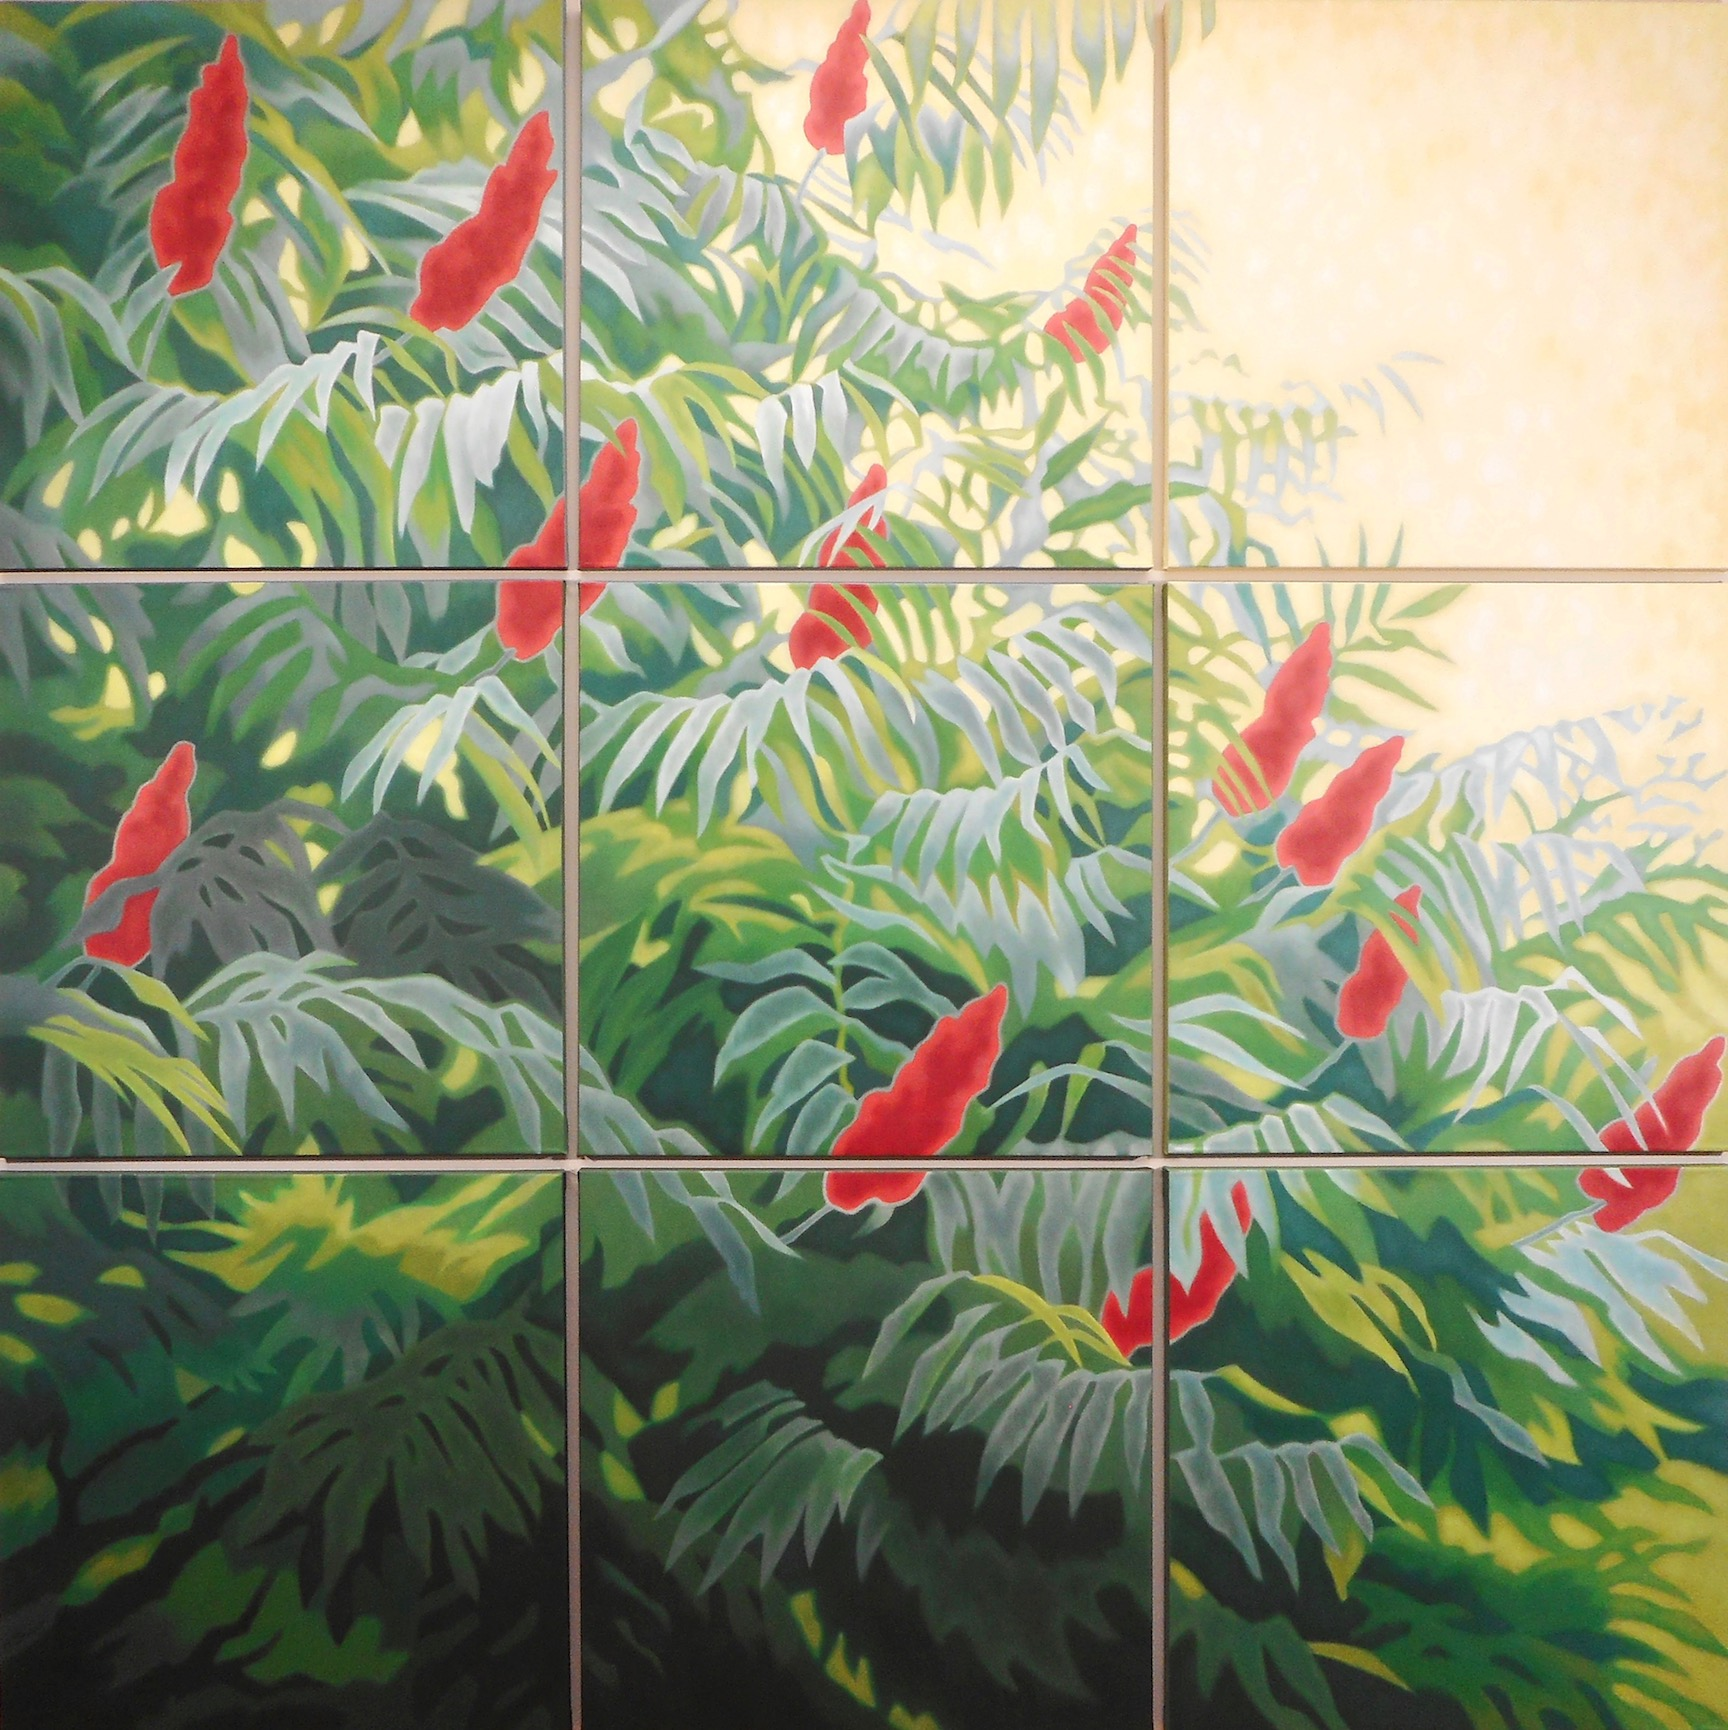 "SUMMER SUMACH by Allen Shugar 72"" x 72"" / 9 panels ea 24"" x 24"" Oil on canvas"